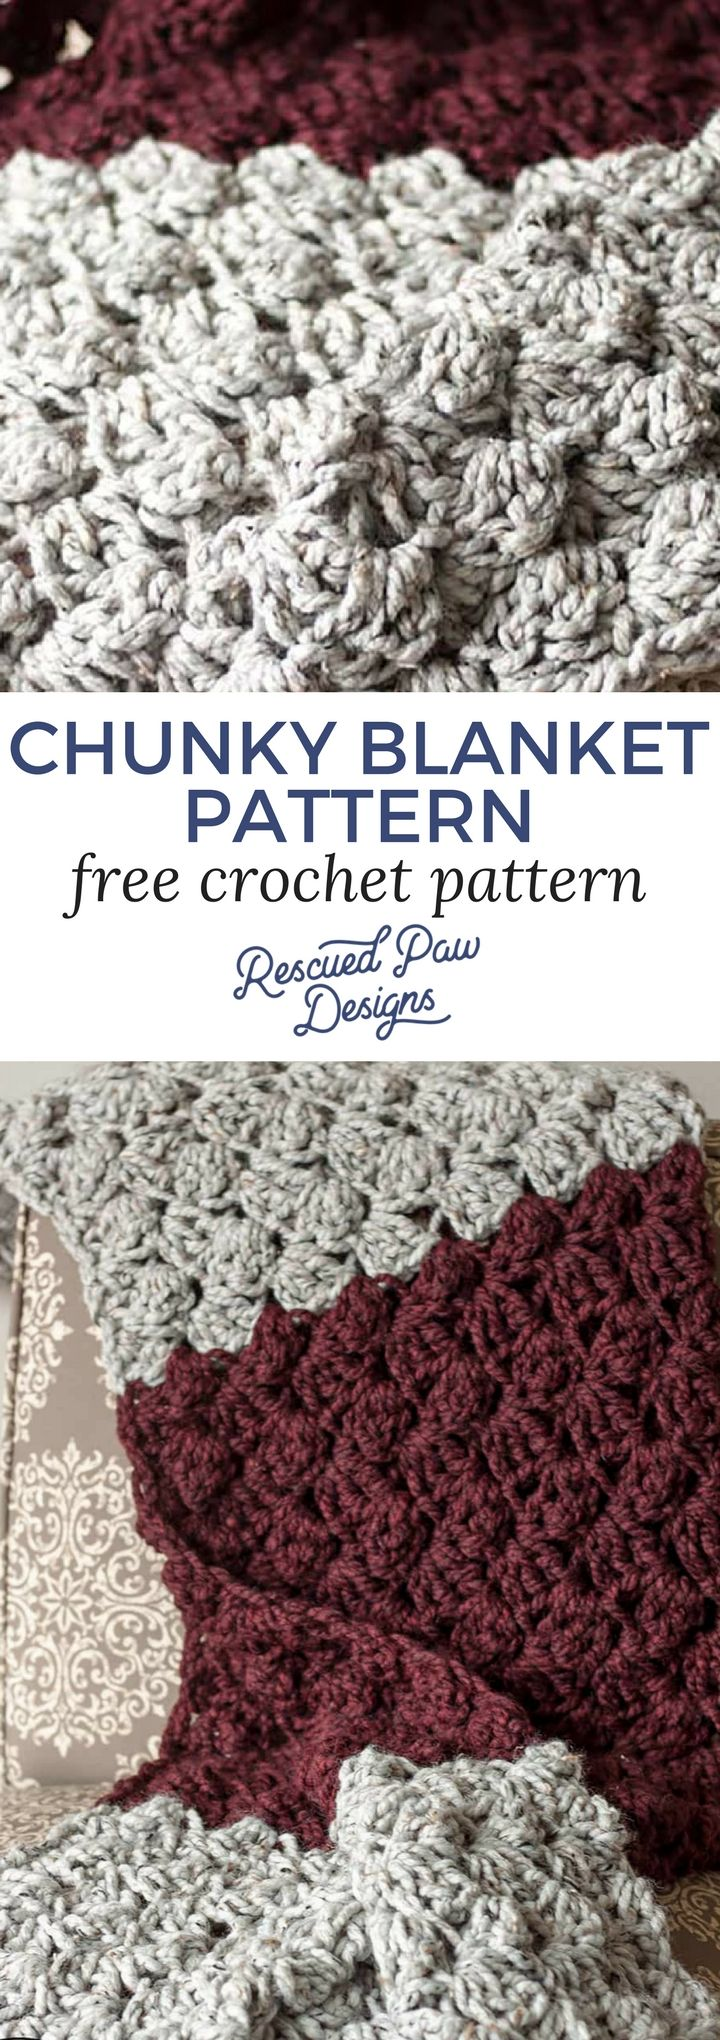 1564 best crochet patterns images on pinterest crafts crochet charlotte crochet blanket a free pattern from rpd bankloansurffo Image collections